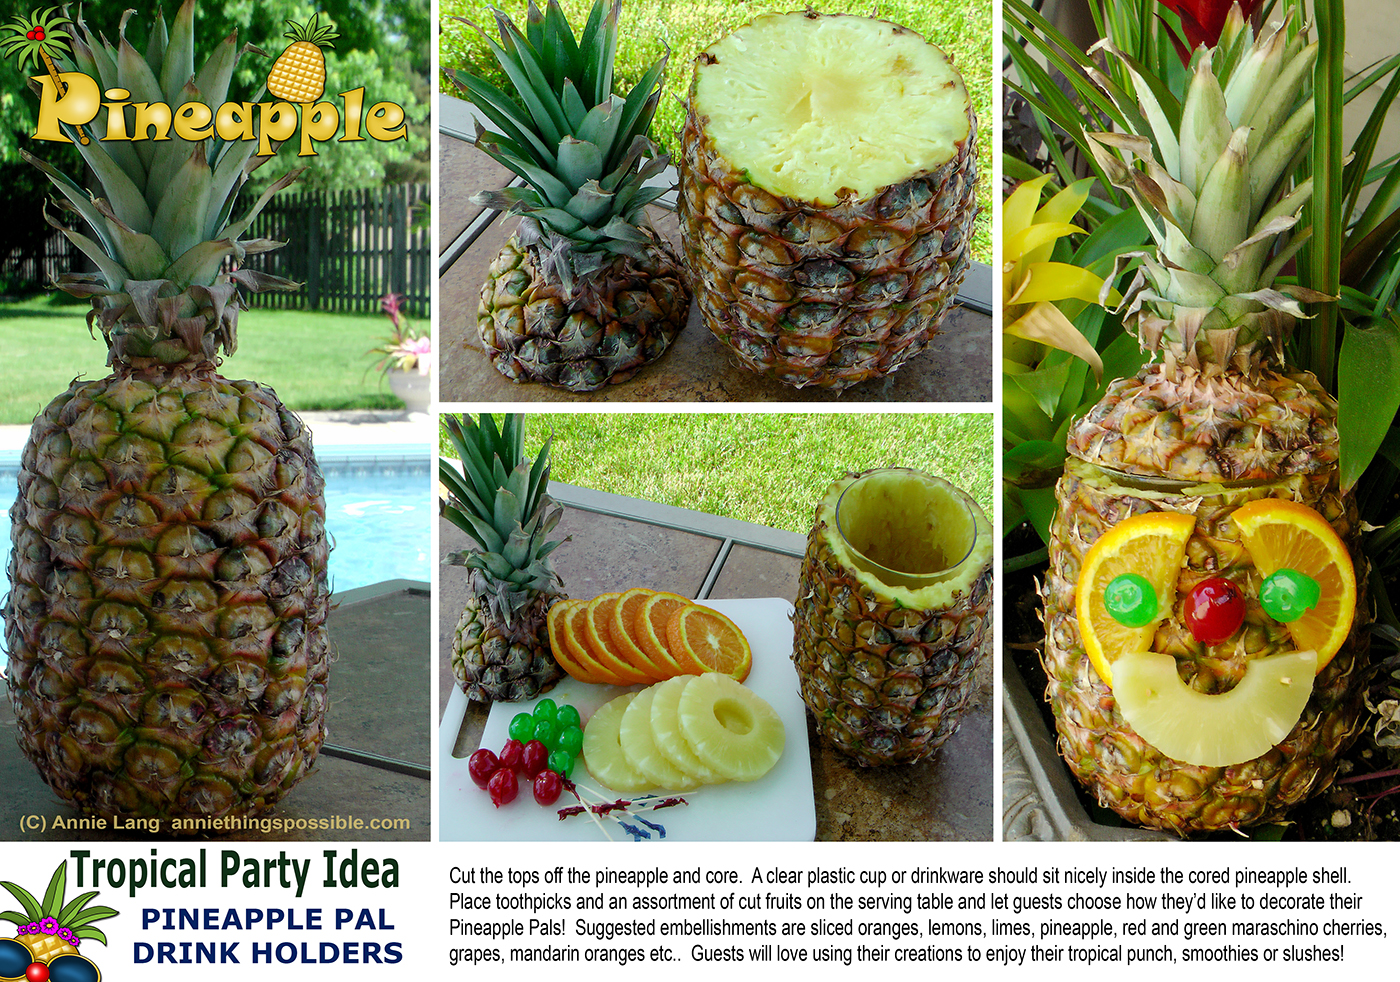 Quick Fun Easy Way To Liven Up Your Tropical Themed Gatherings